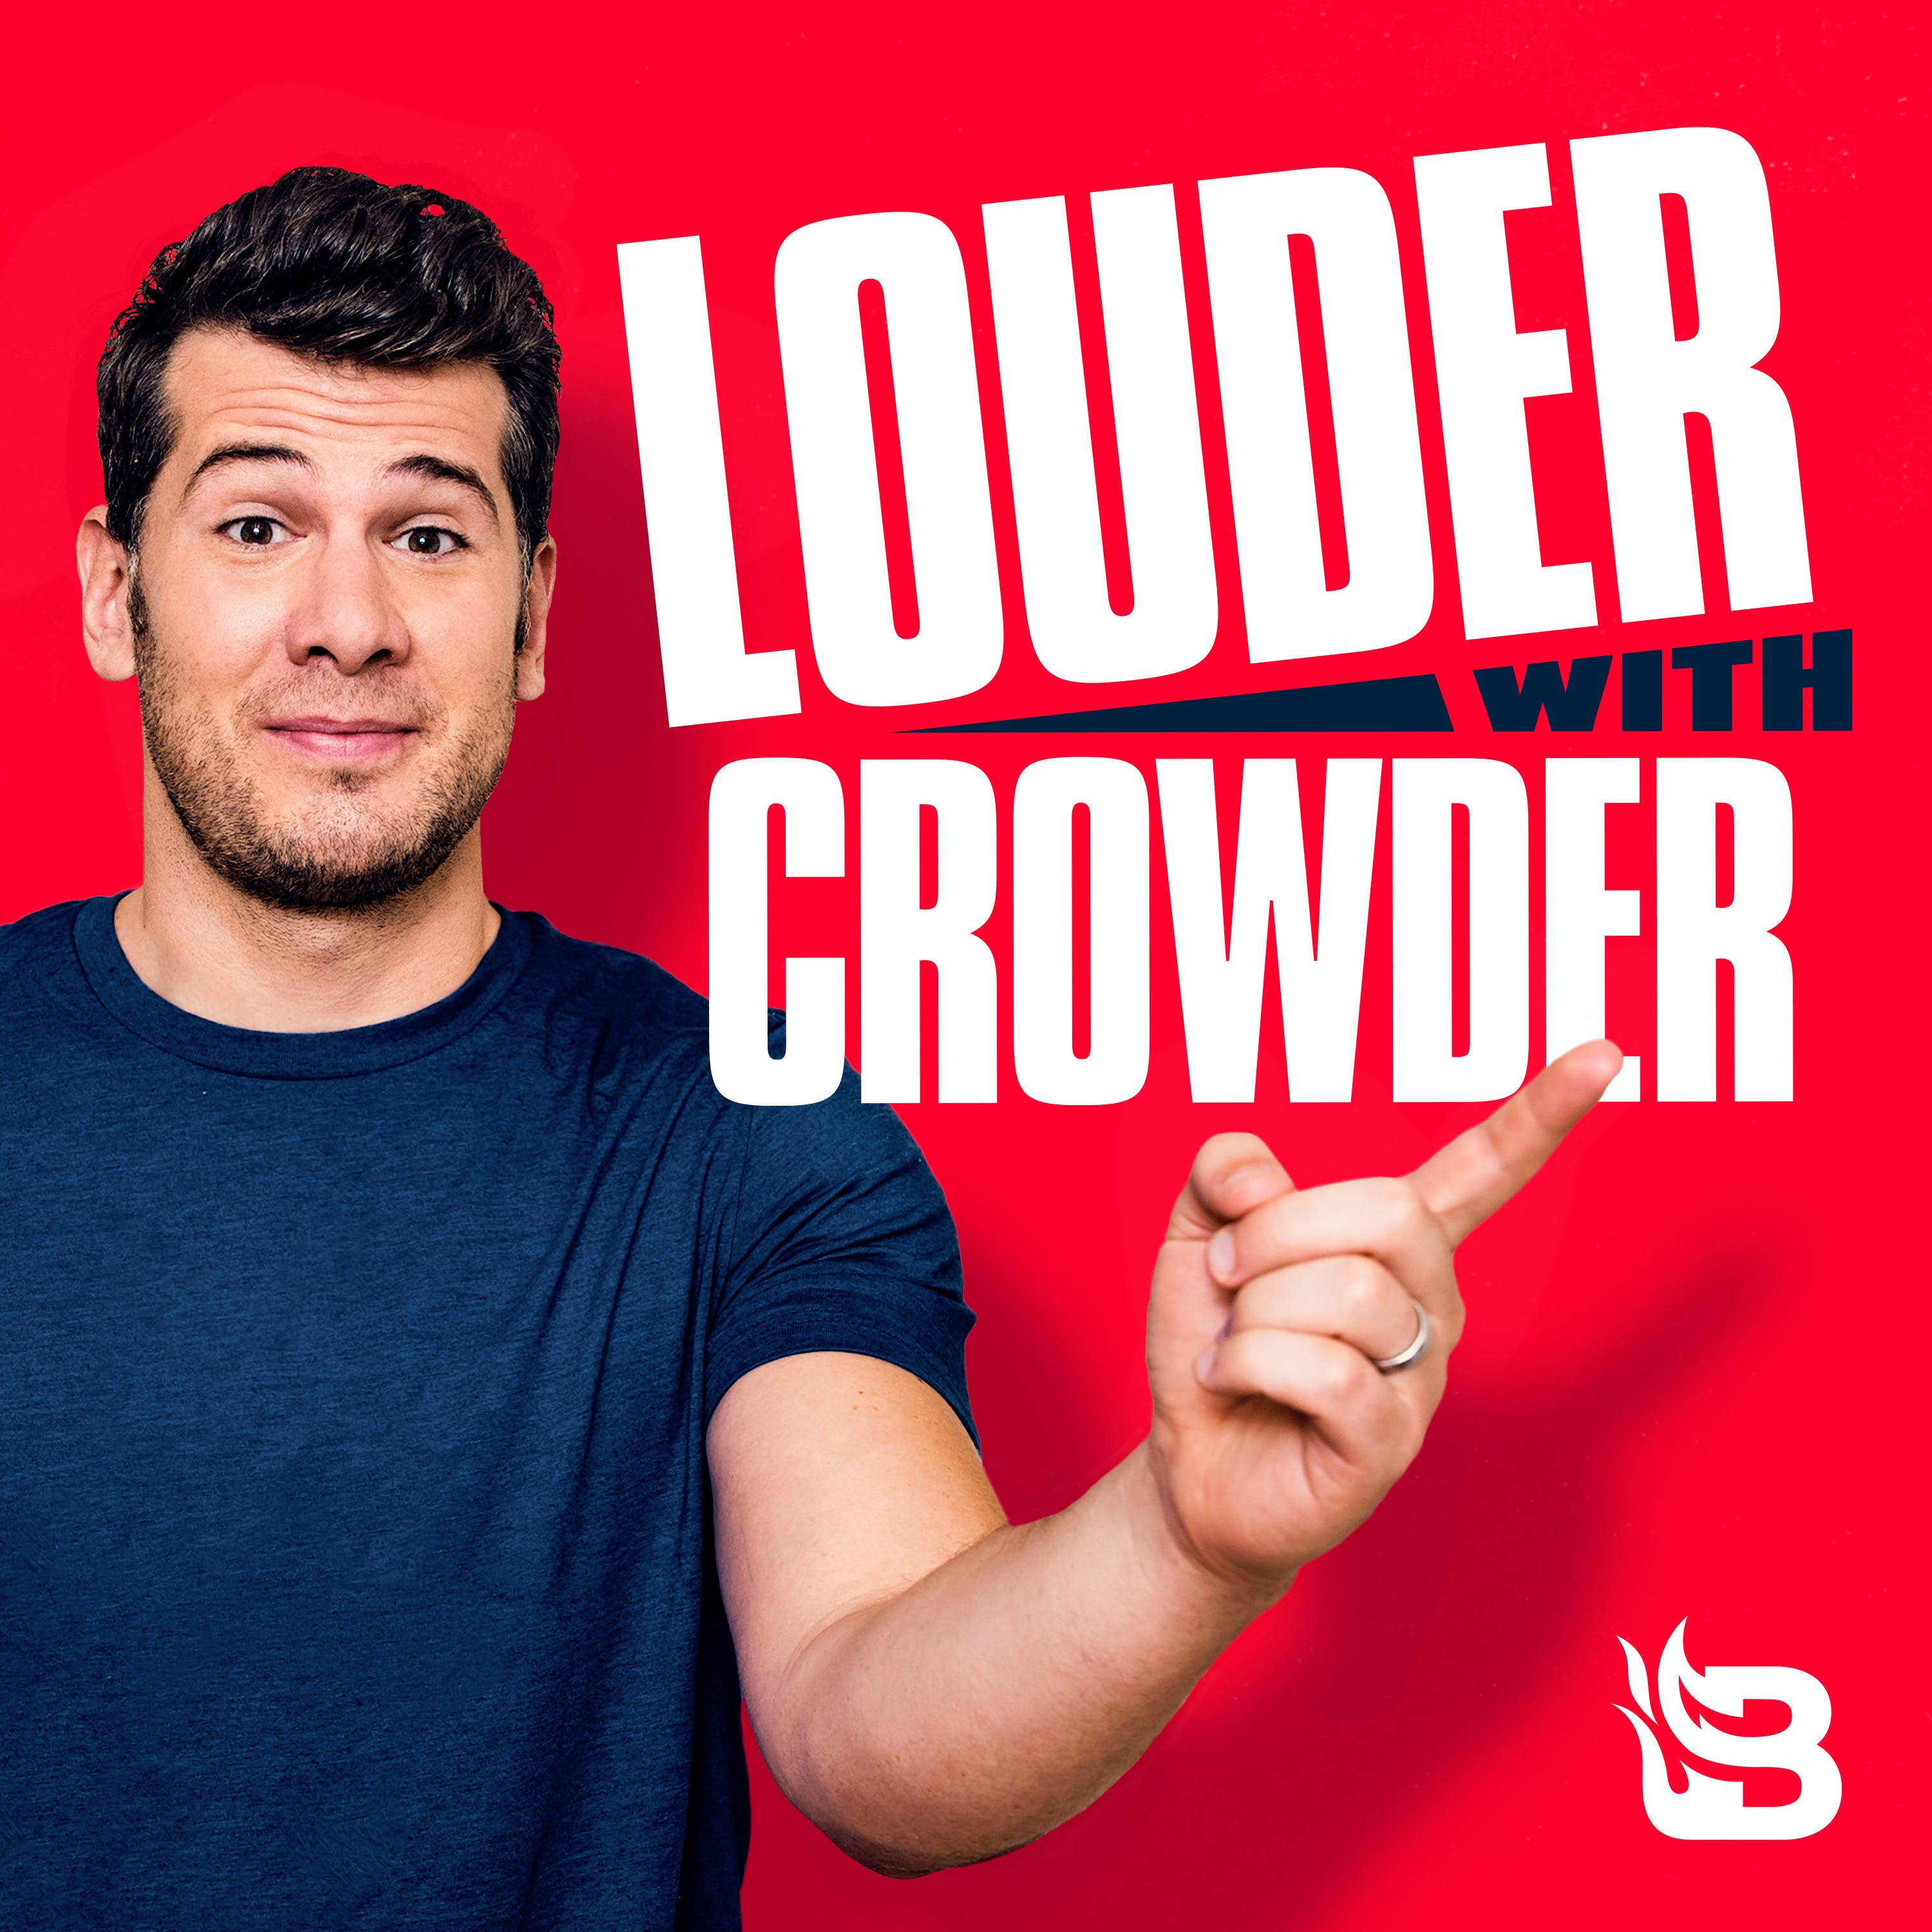 podcast thumbnail for 'Louder with Crowder'